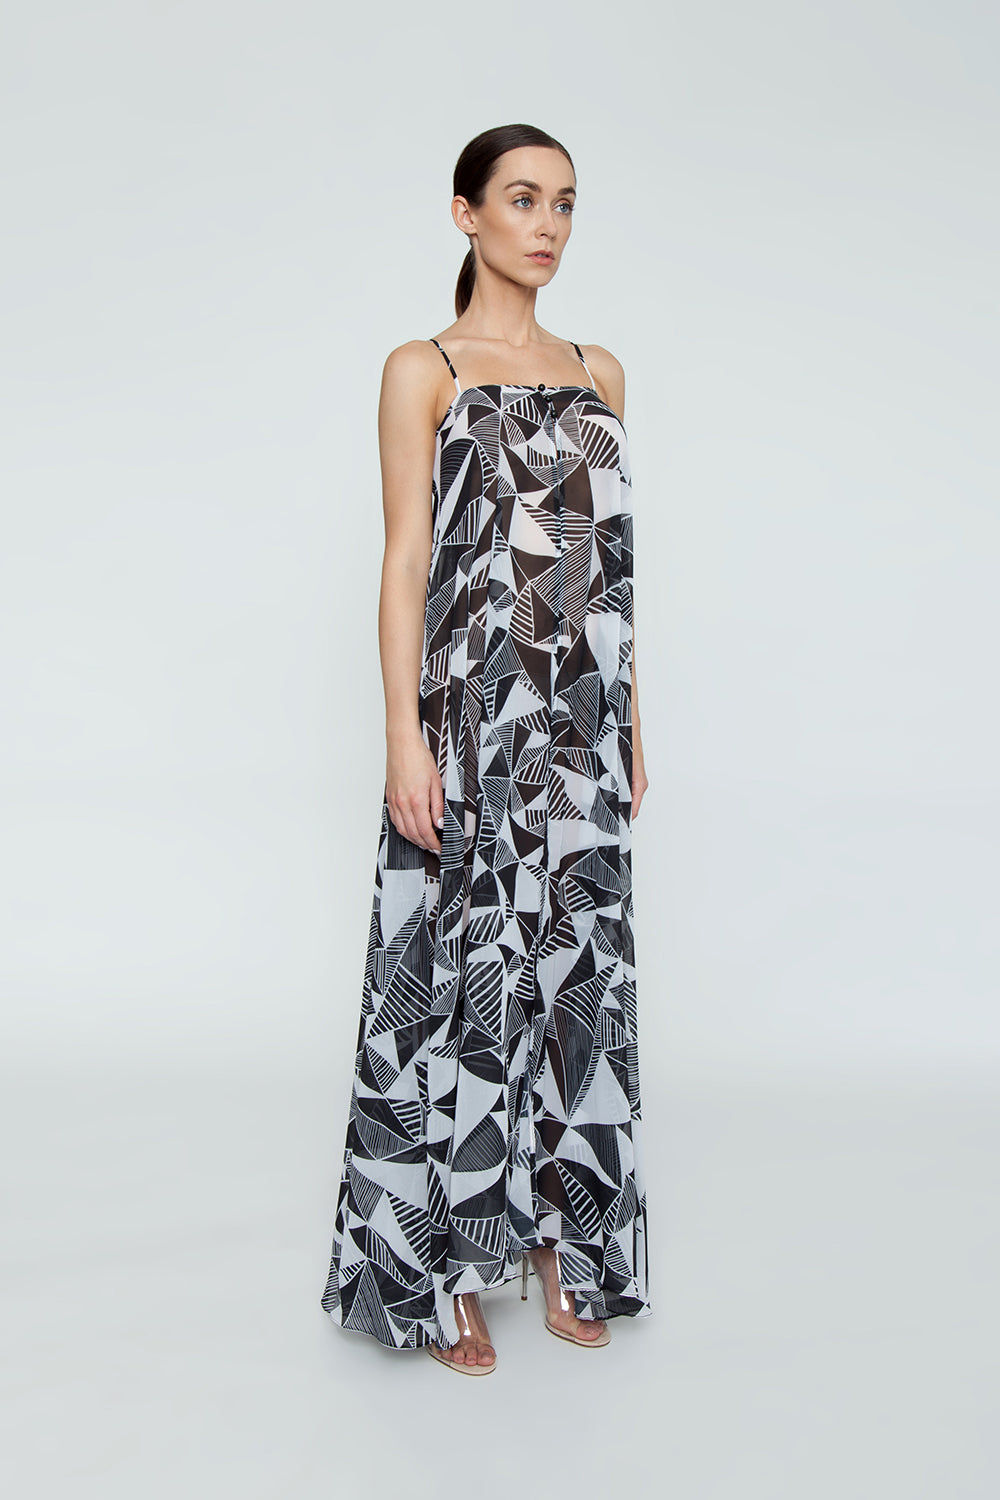 TRIYA Check Out Open Front Flowy Maxi Dress - Black & White Umbrellas Print Dress | Black & White Umbrellas Print | Triya Check Out Open Front Flowy Maxi Dress - Black & White Umbrellas Print Flowy dress Thin shoulder straps Front button detail  Front opening Front View